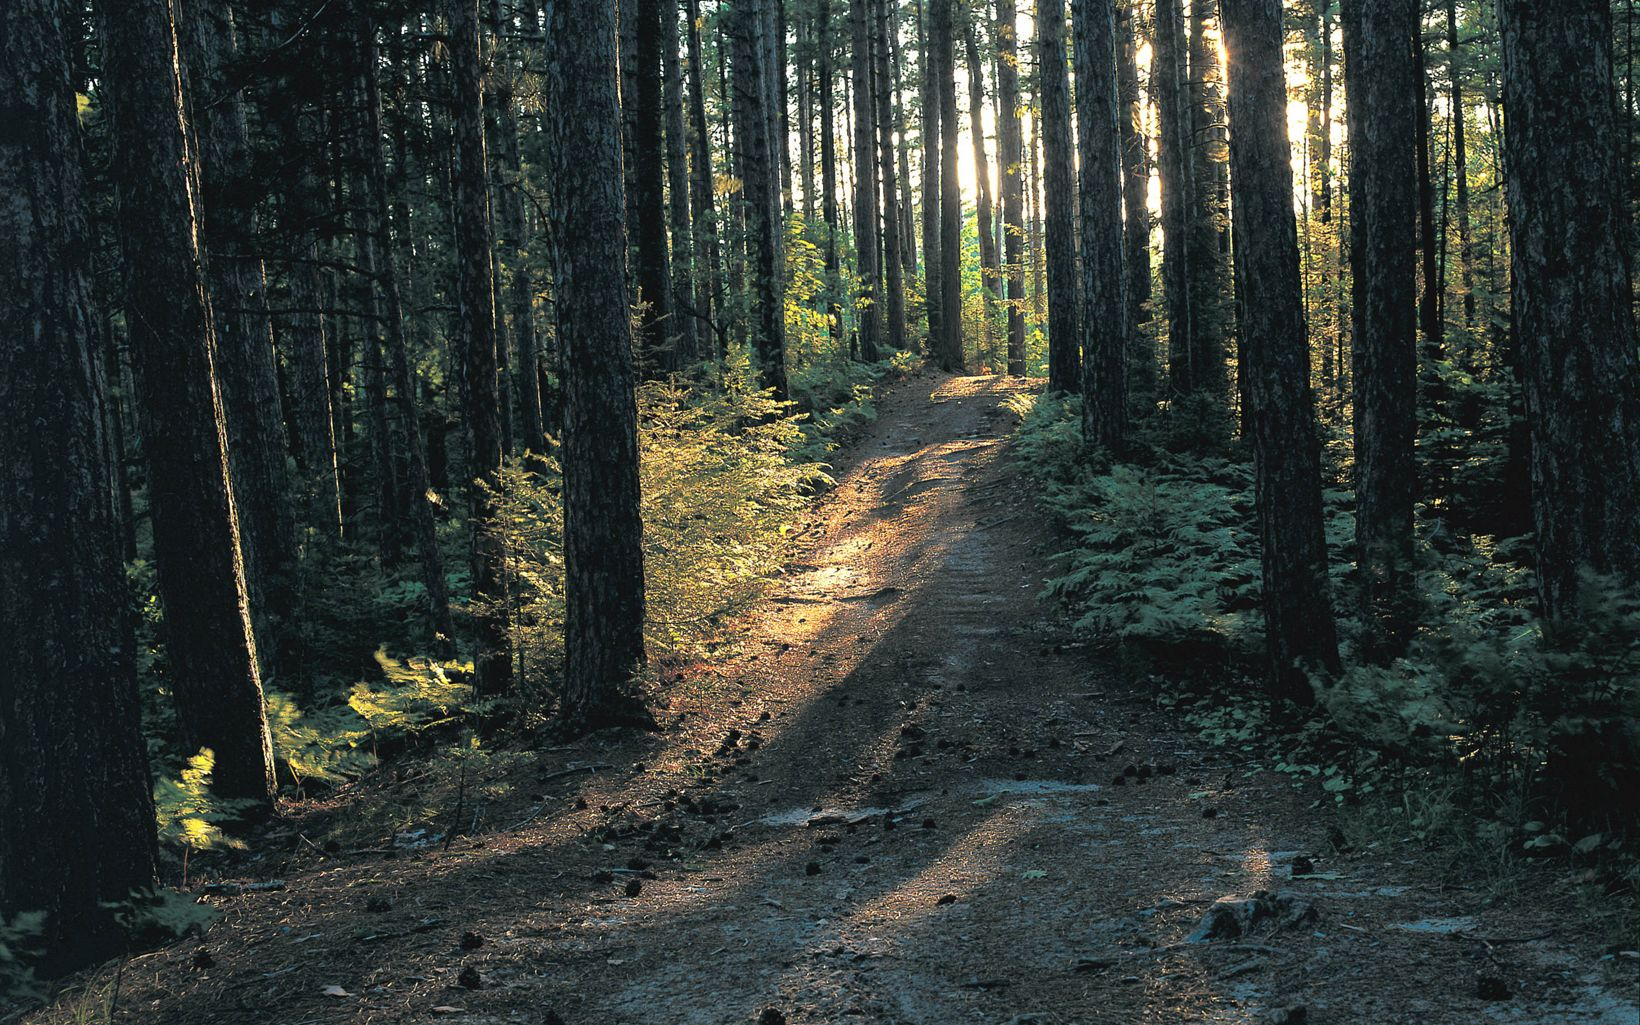 The sun streams through tall trees surrounding a brown footpath and green undergrowth.